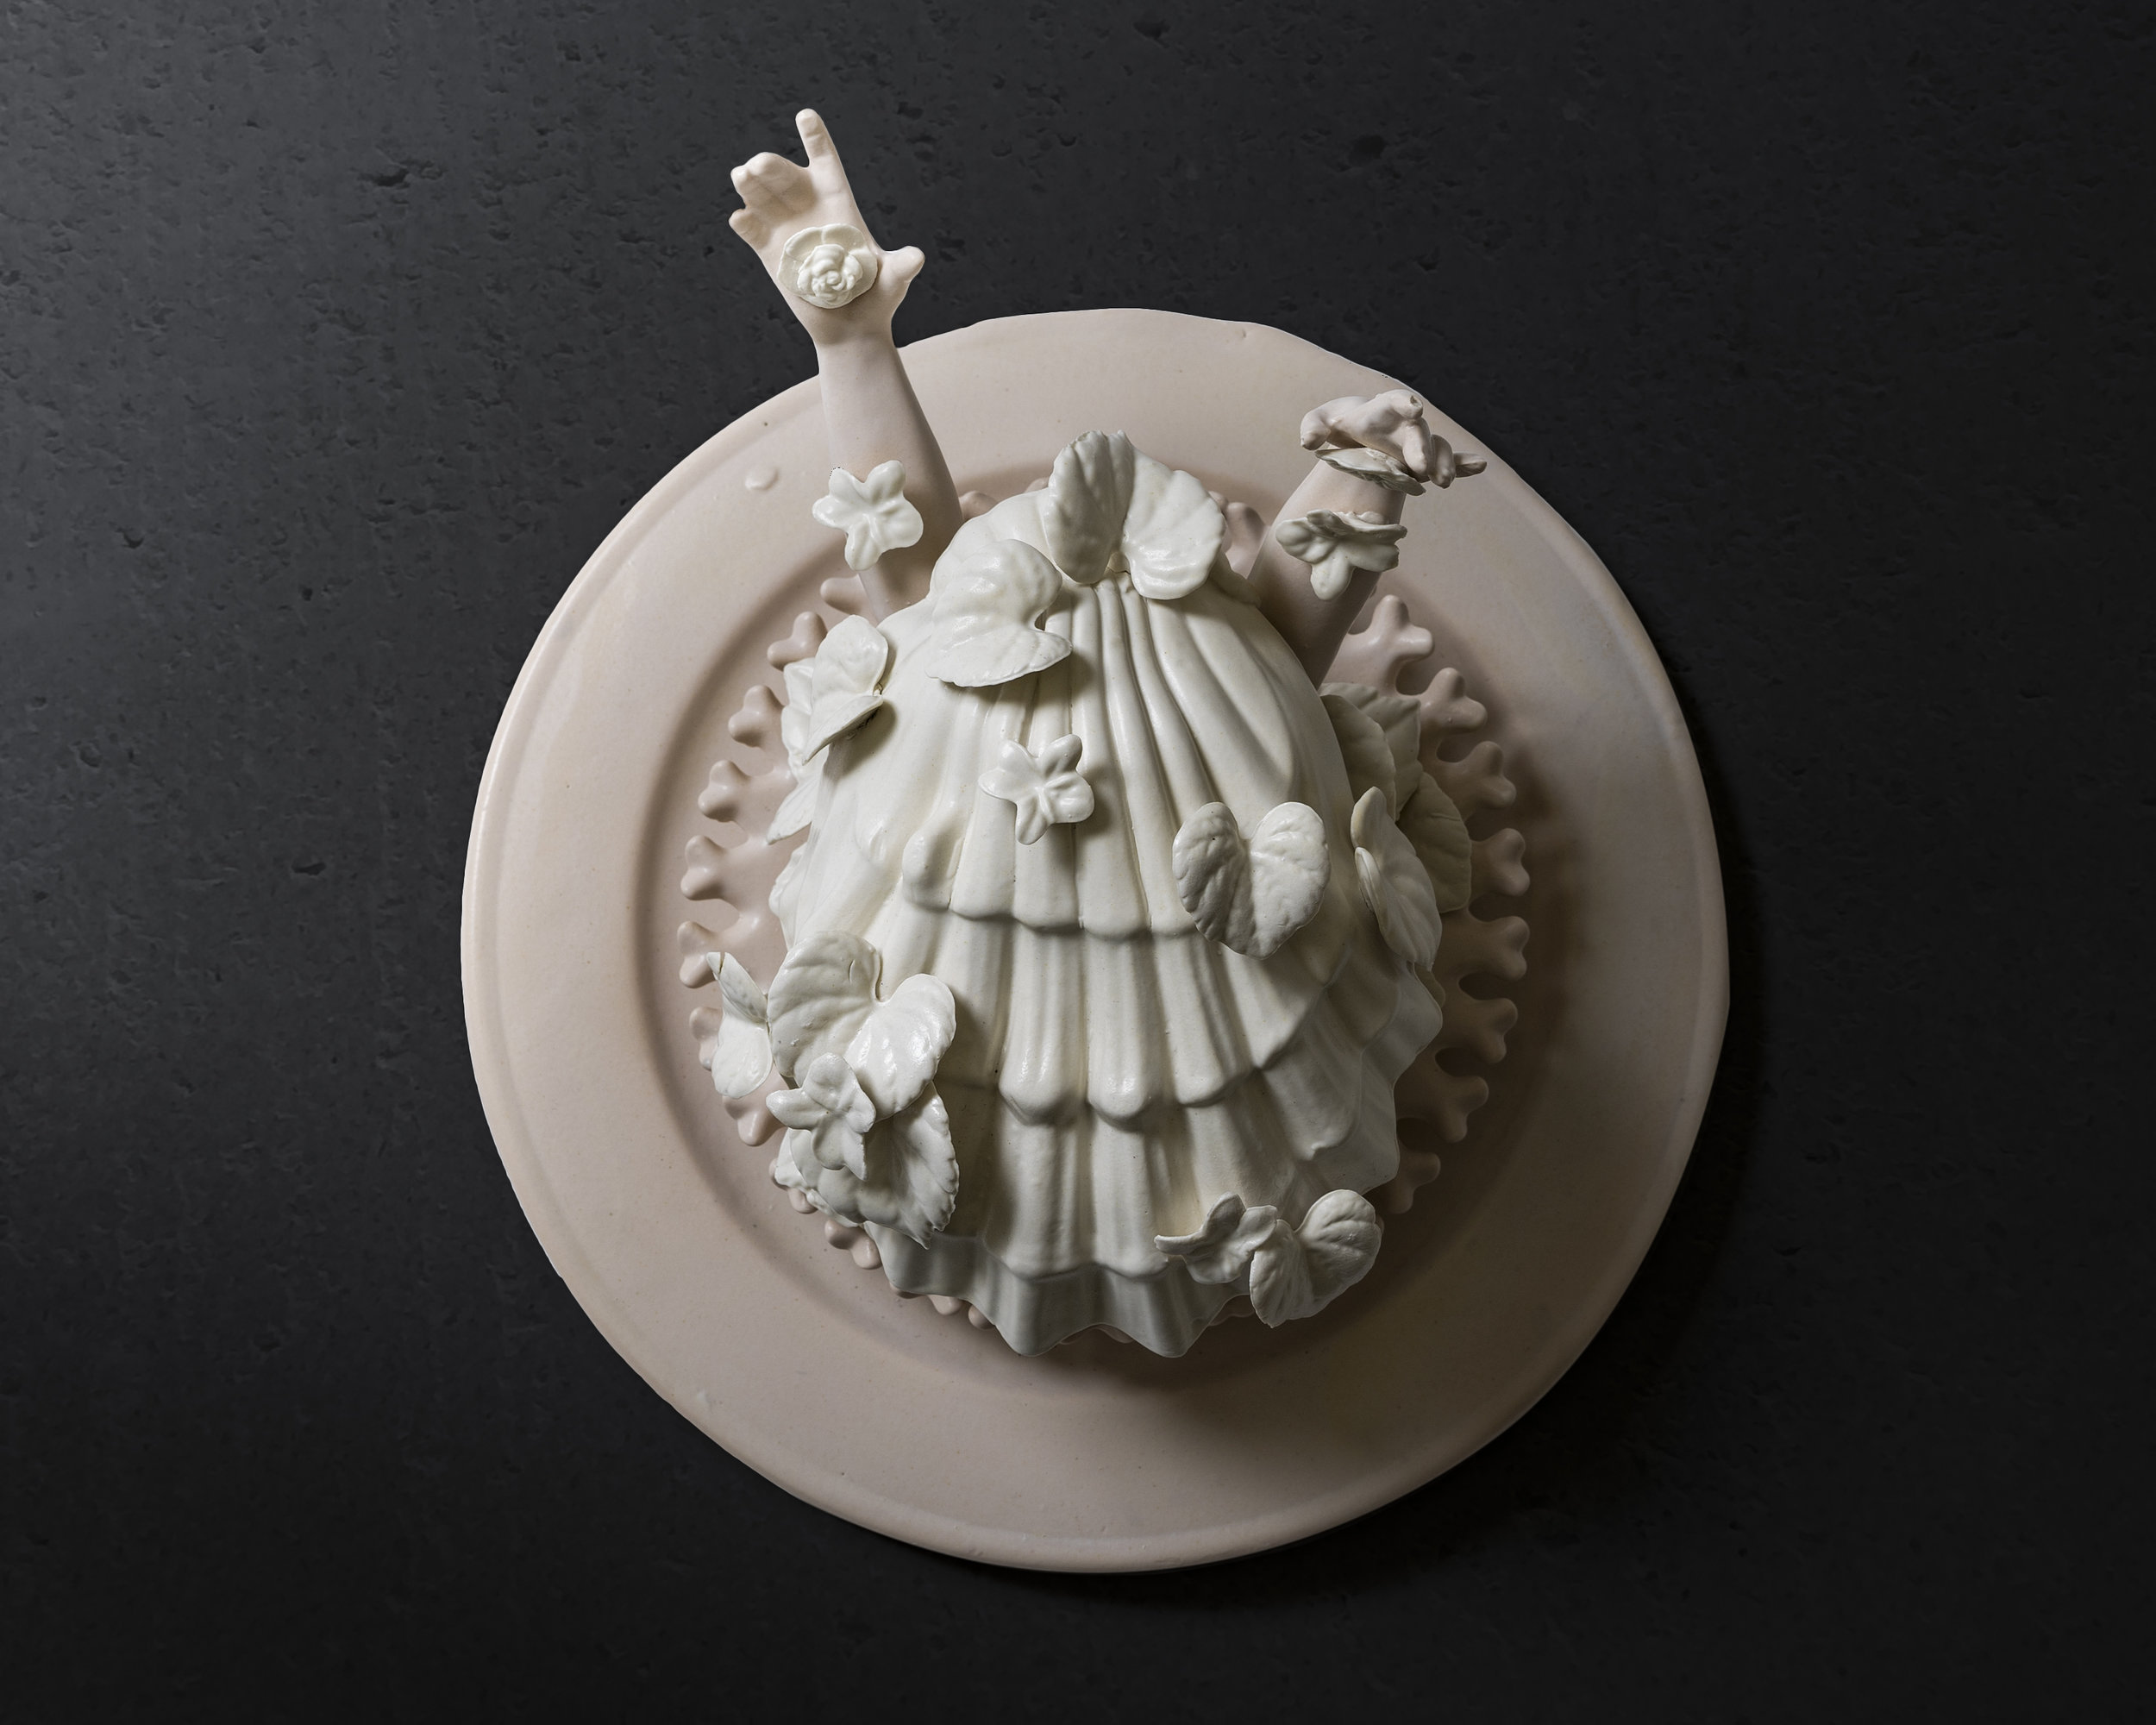 "Dancing with faith, thieves bloom in two shades of cream  Medium: Slipped cast porcelain ceramic, hand build & altered forms Dimensions: 12"" x 12"" x 7""  Year: 2019  Photography by: Pedro Wazzan"